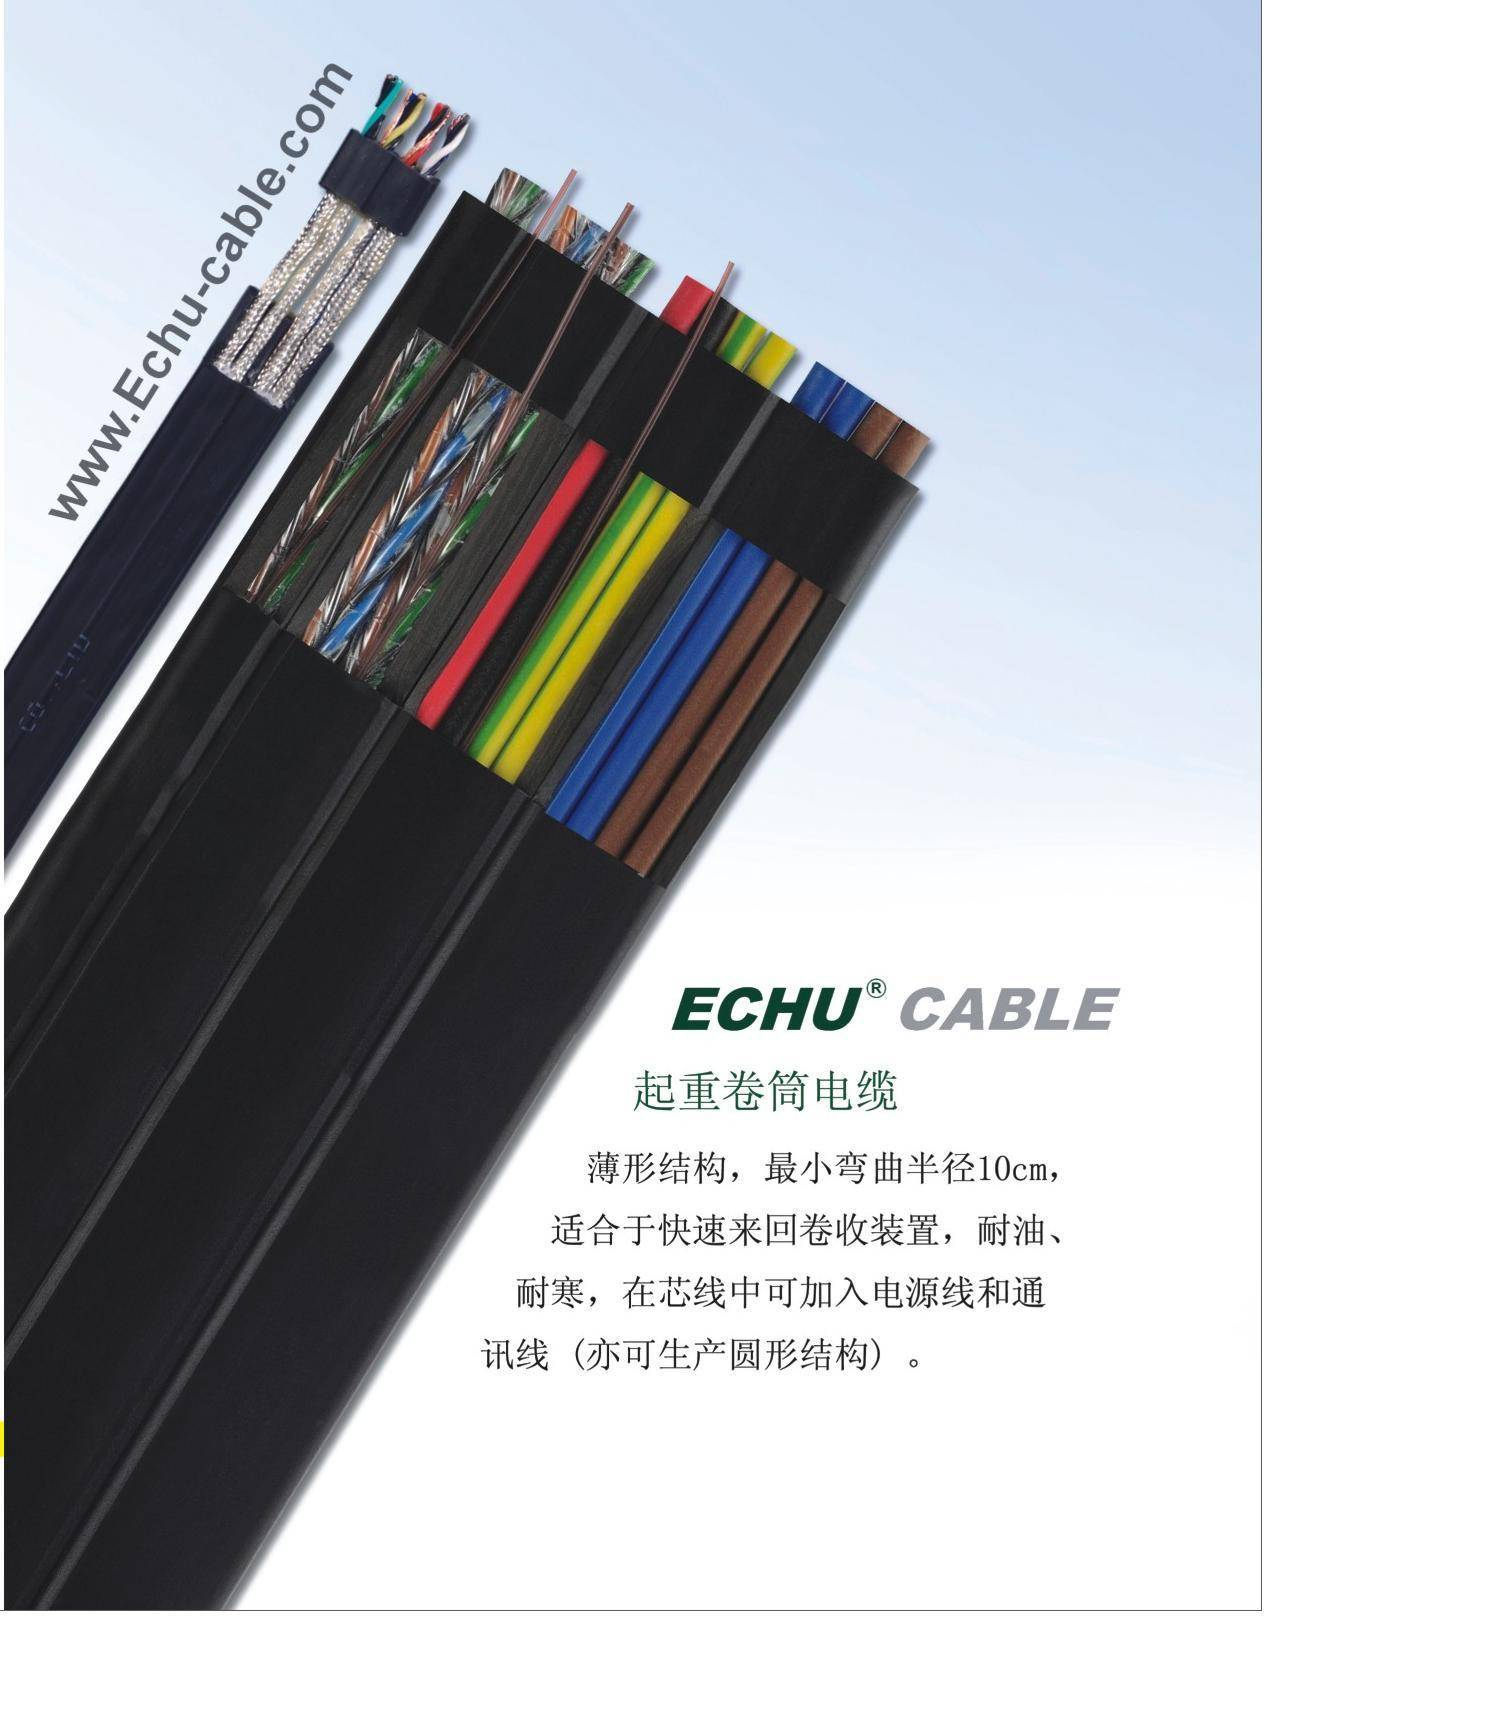 Flat Cable for cranes & conveyors